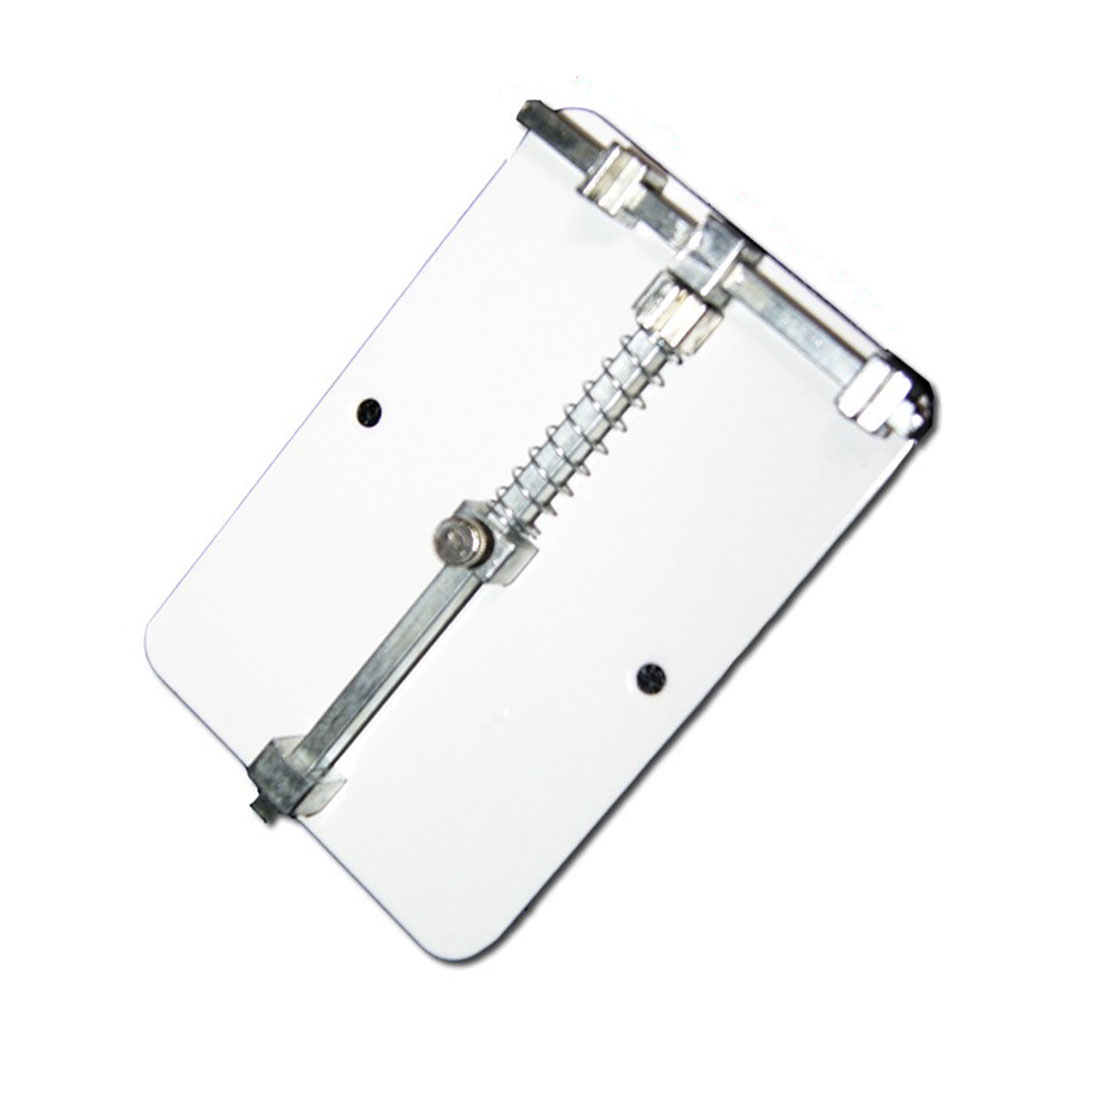 8*12cm Mobile Phone Board Repair Fixture PCB Holder Work Station Platform Fixed Support Clamp Steel PCB Board Soldering Repair8*12cm Mobile Phone Board Repair Fixture PCB Holder Work Station Platform Fixed Support Clamp Steel PCB Board Soldering Repair